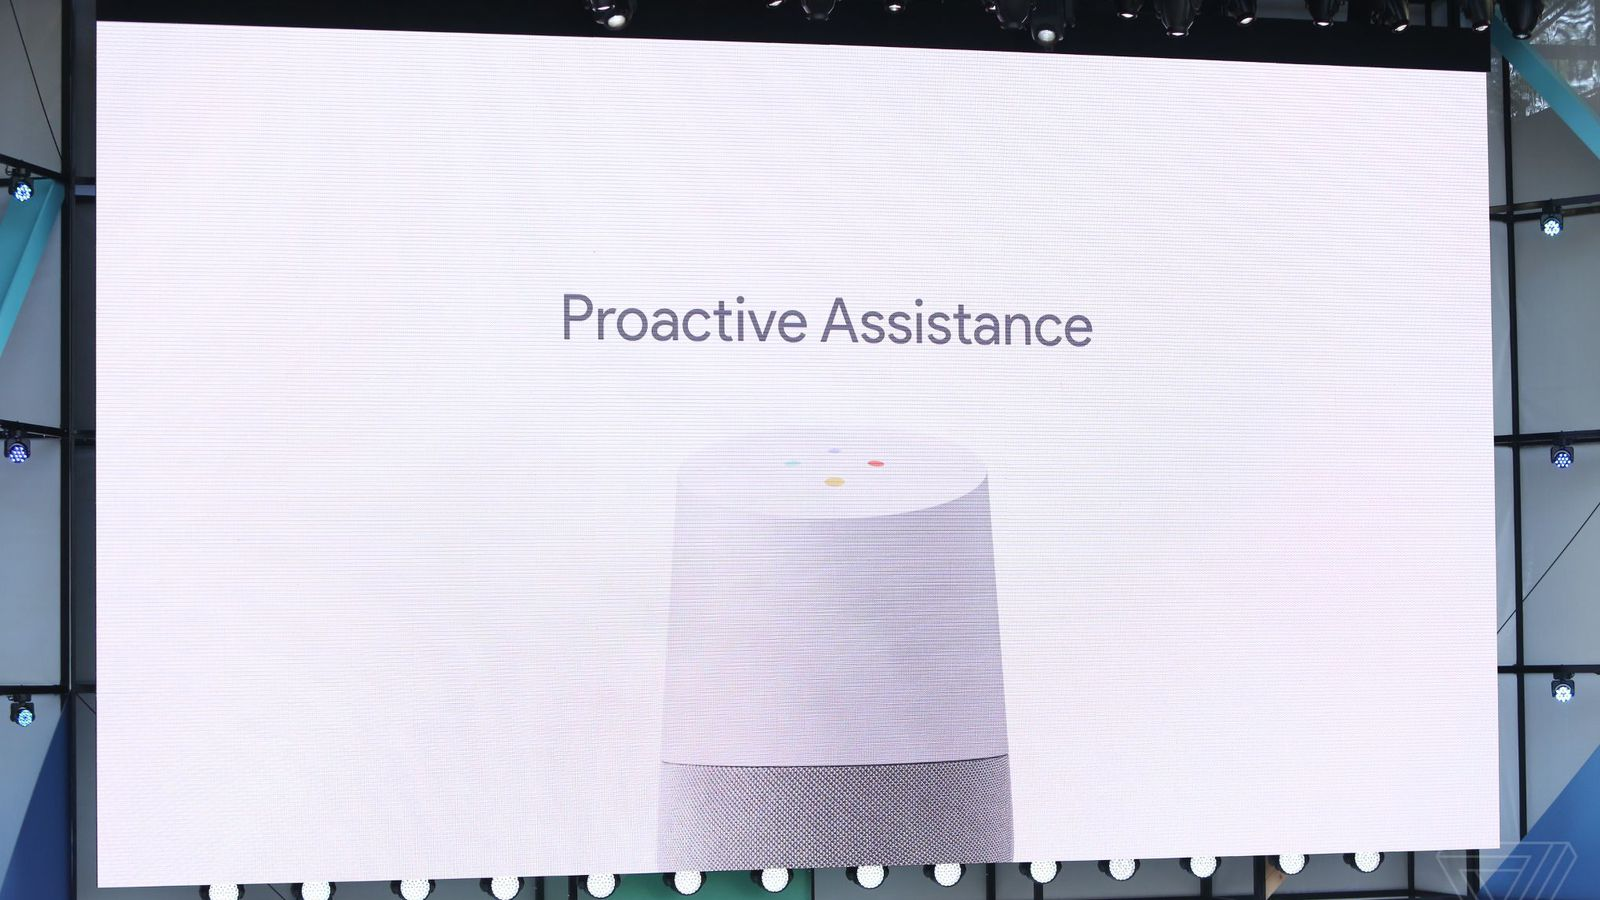 Google Home will Soon Notify You About Reminders, Flight Updates, and More